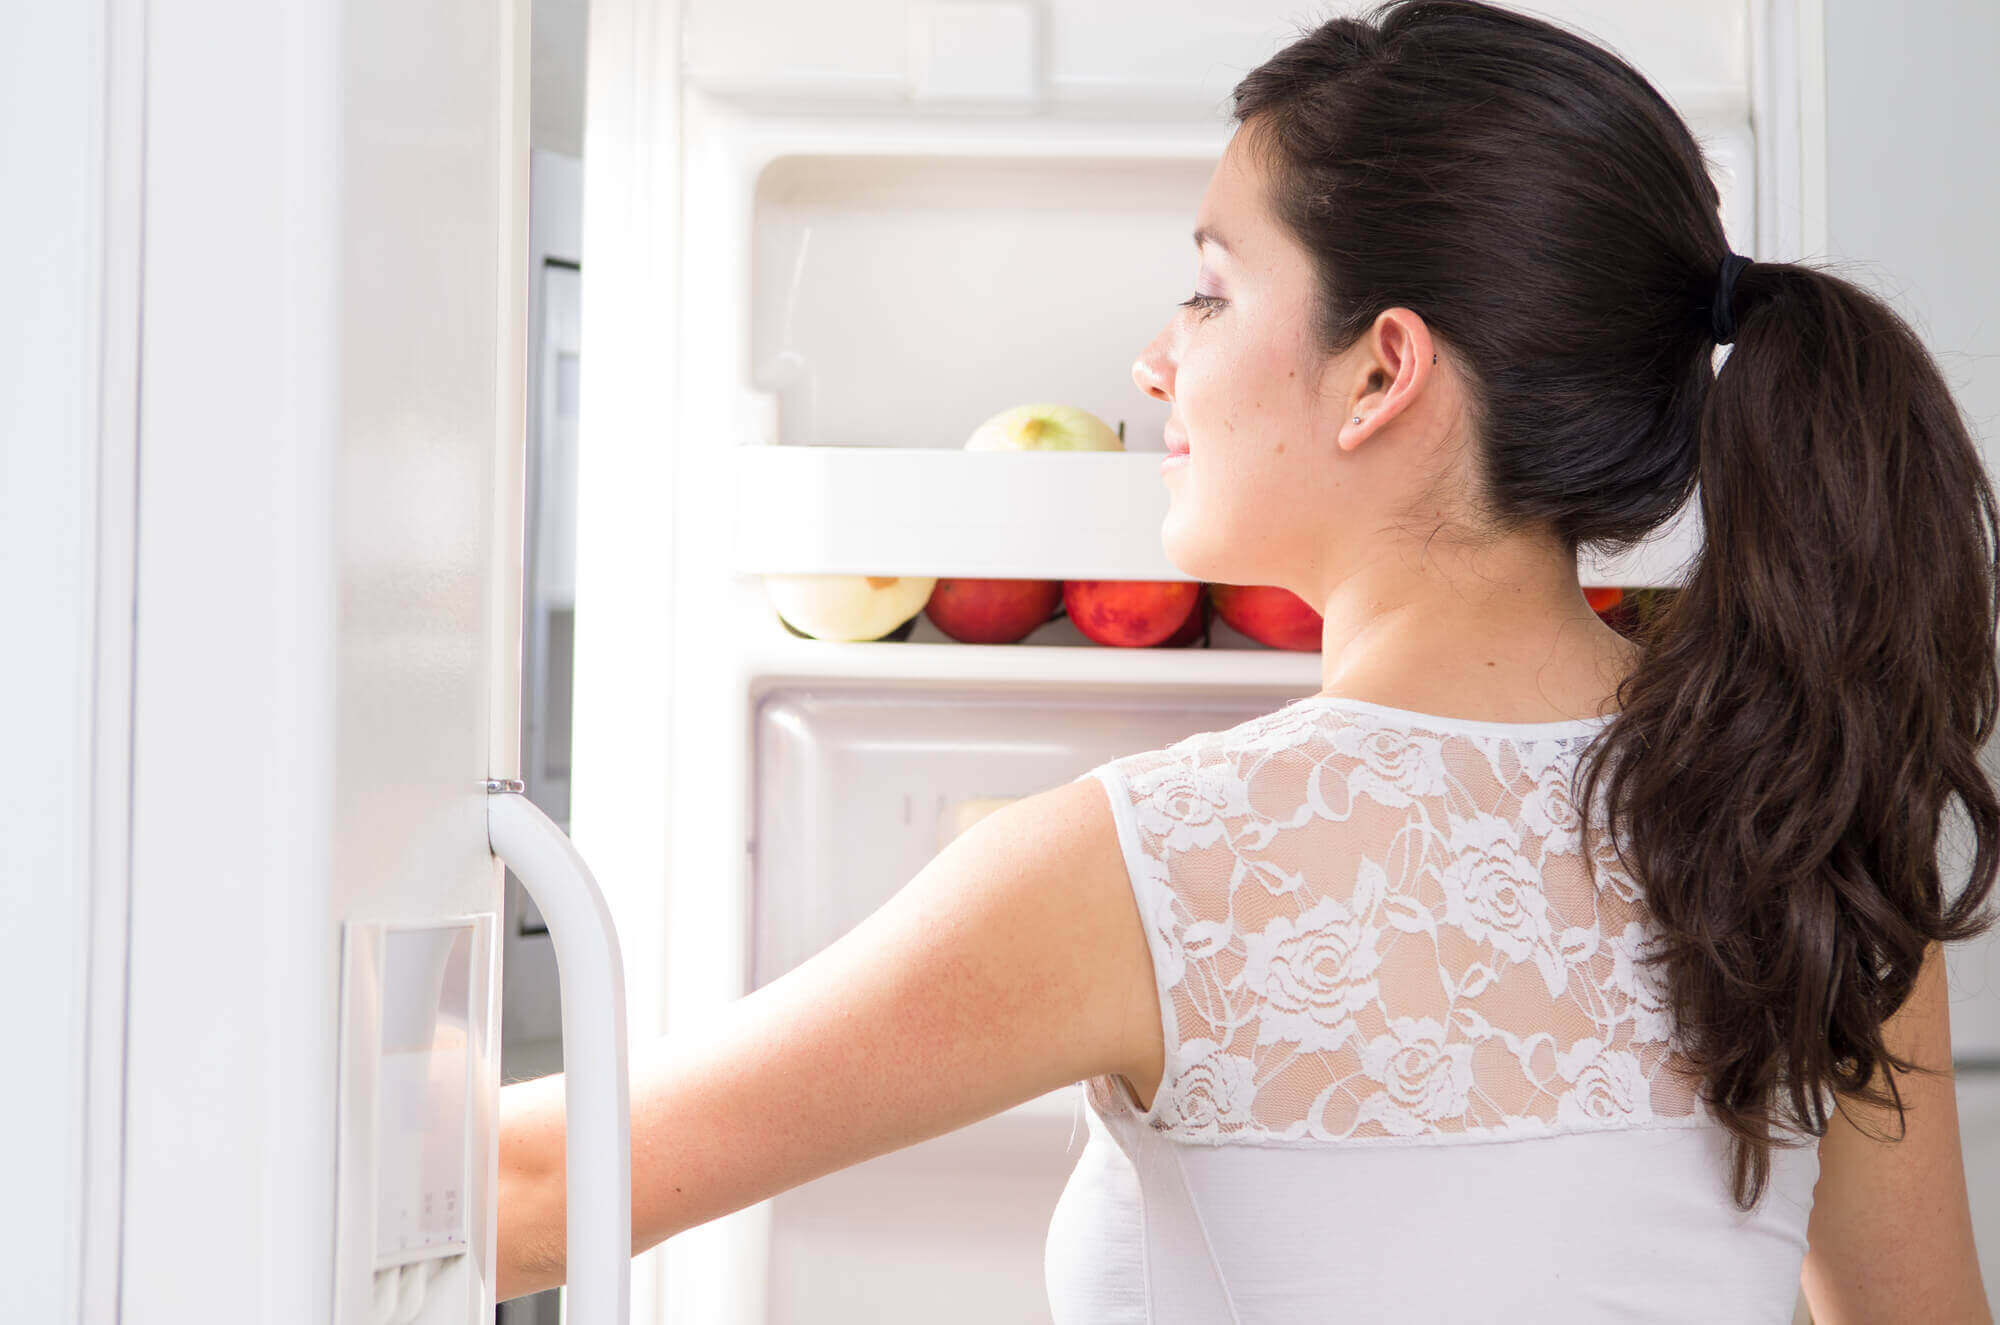 Celebrate national clean out your fridge day on Nov. 15th